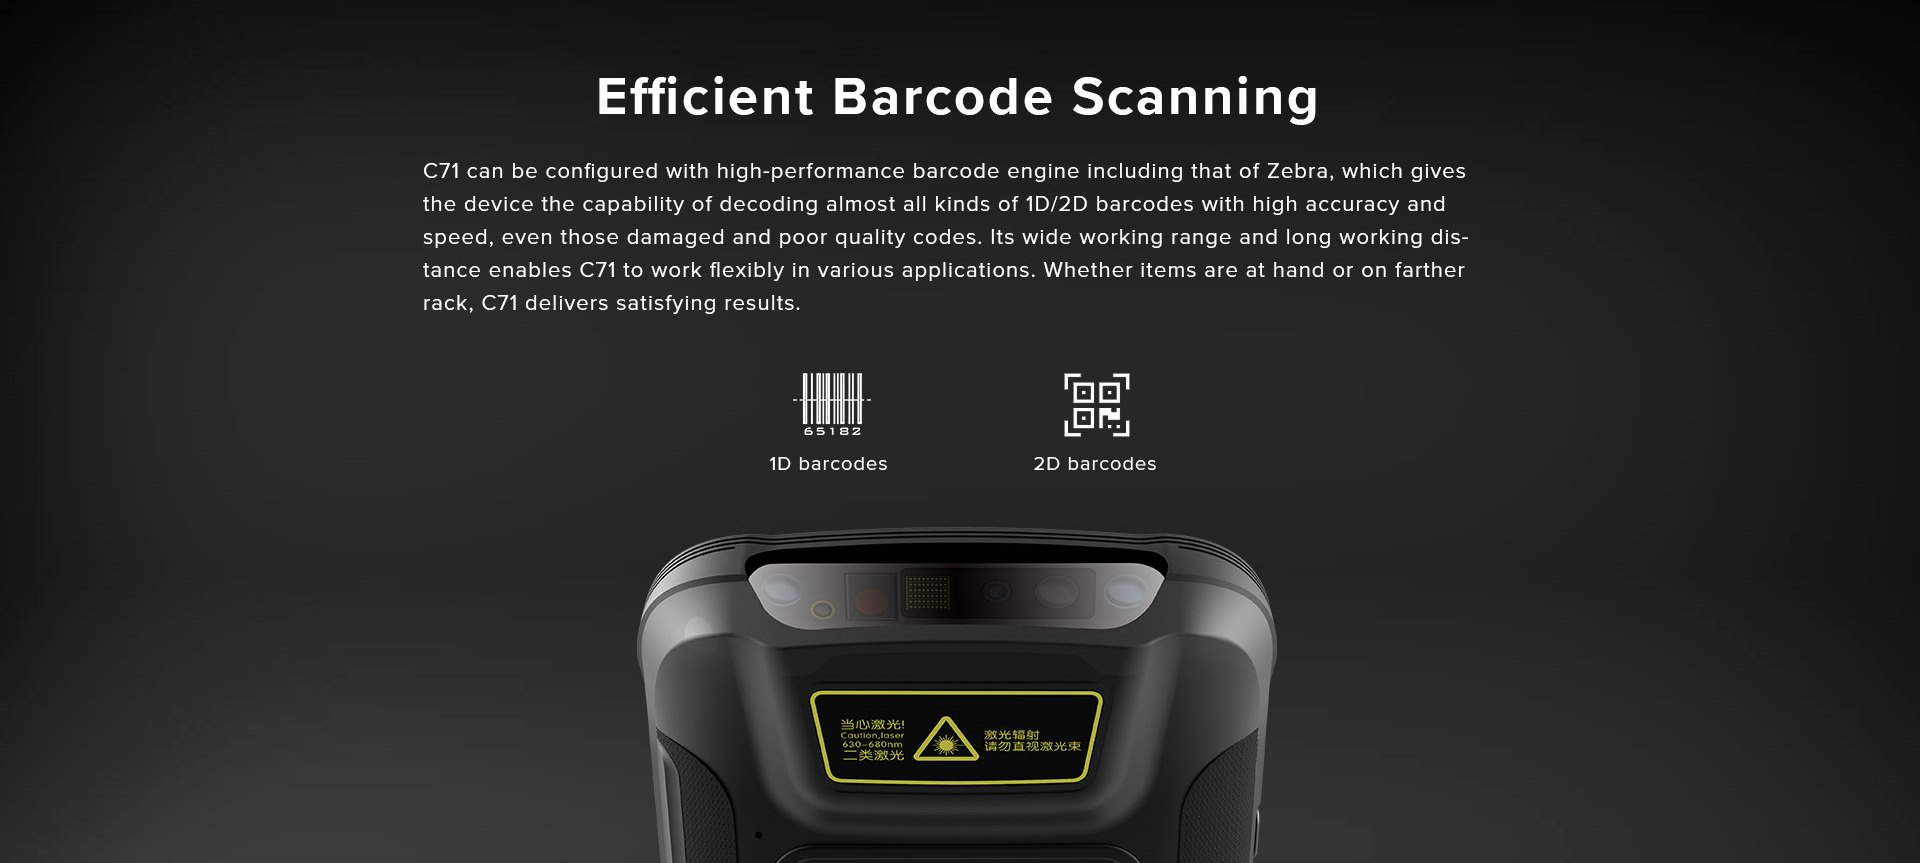 C71 - Android Industrial Mobile Computer - 2d barcode